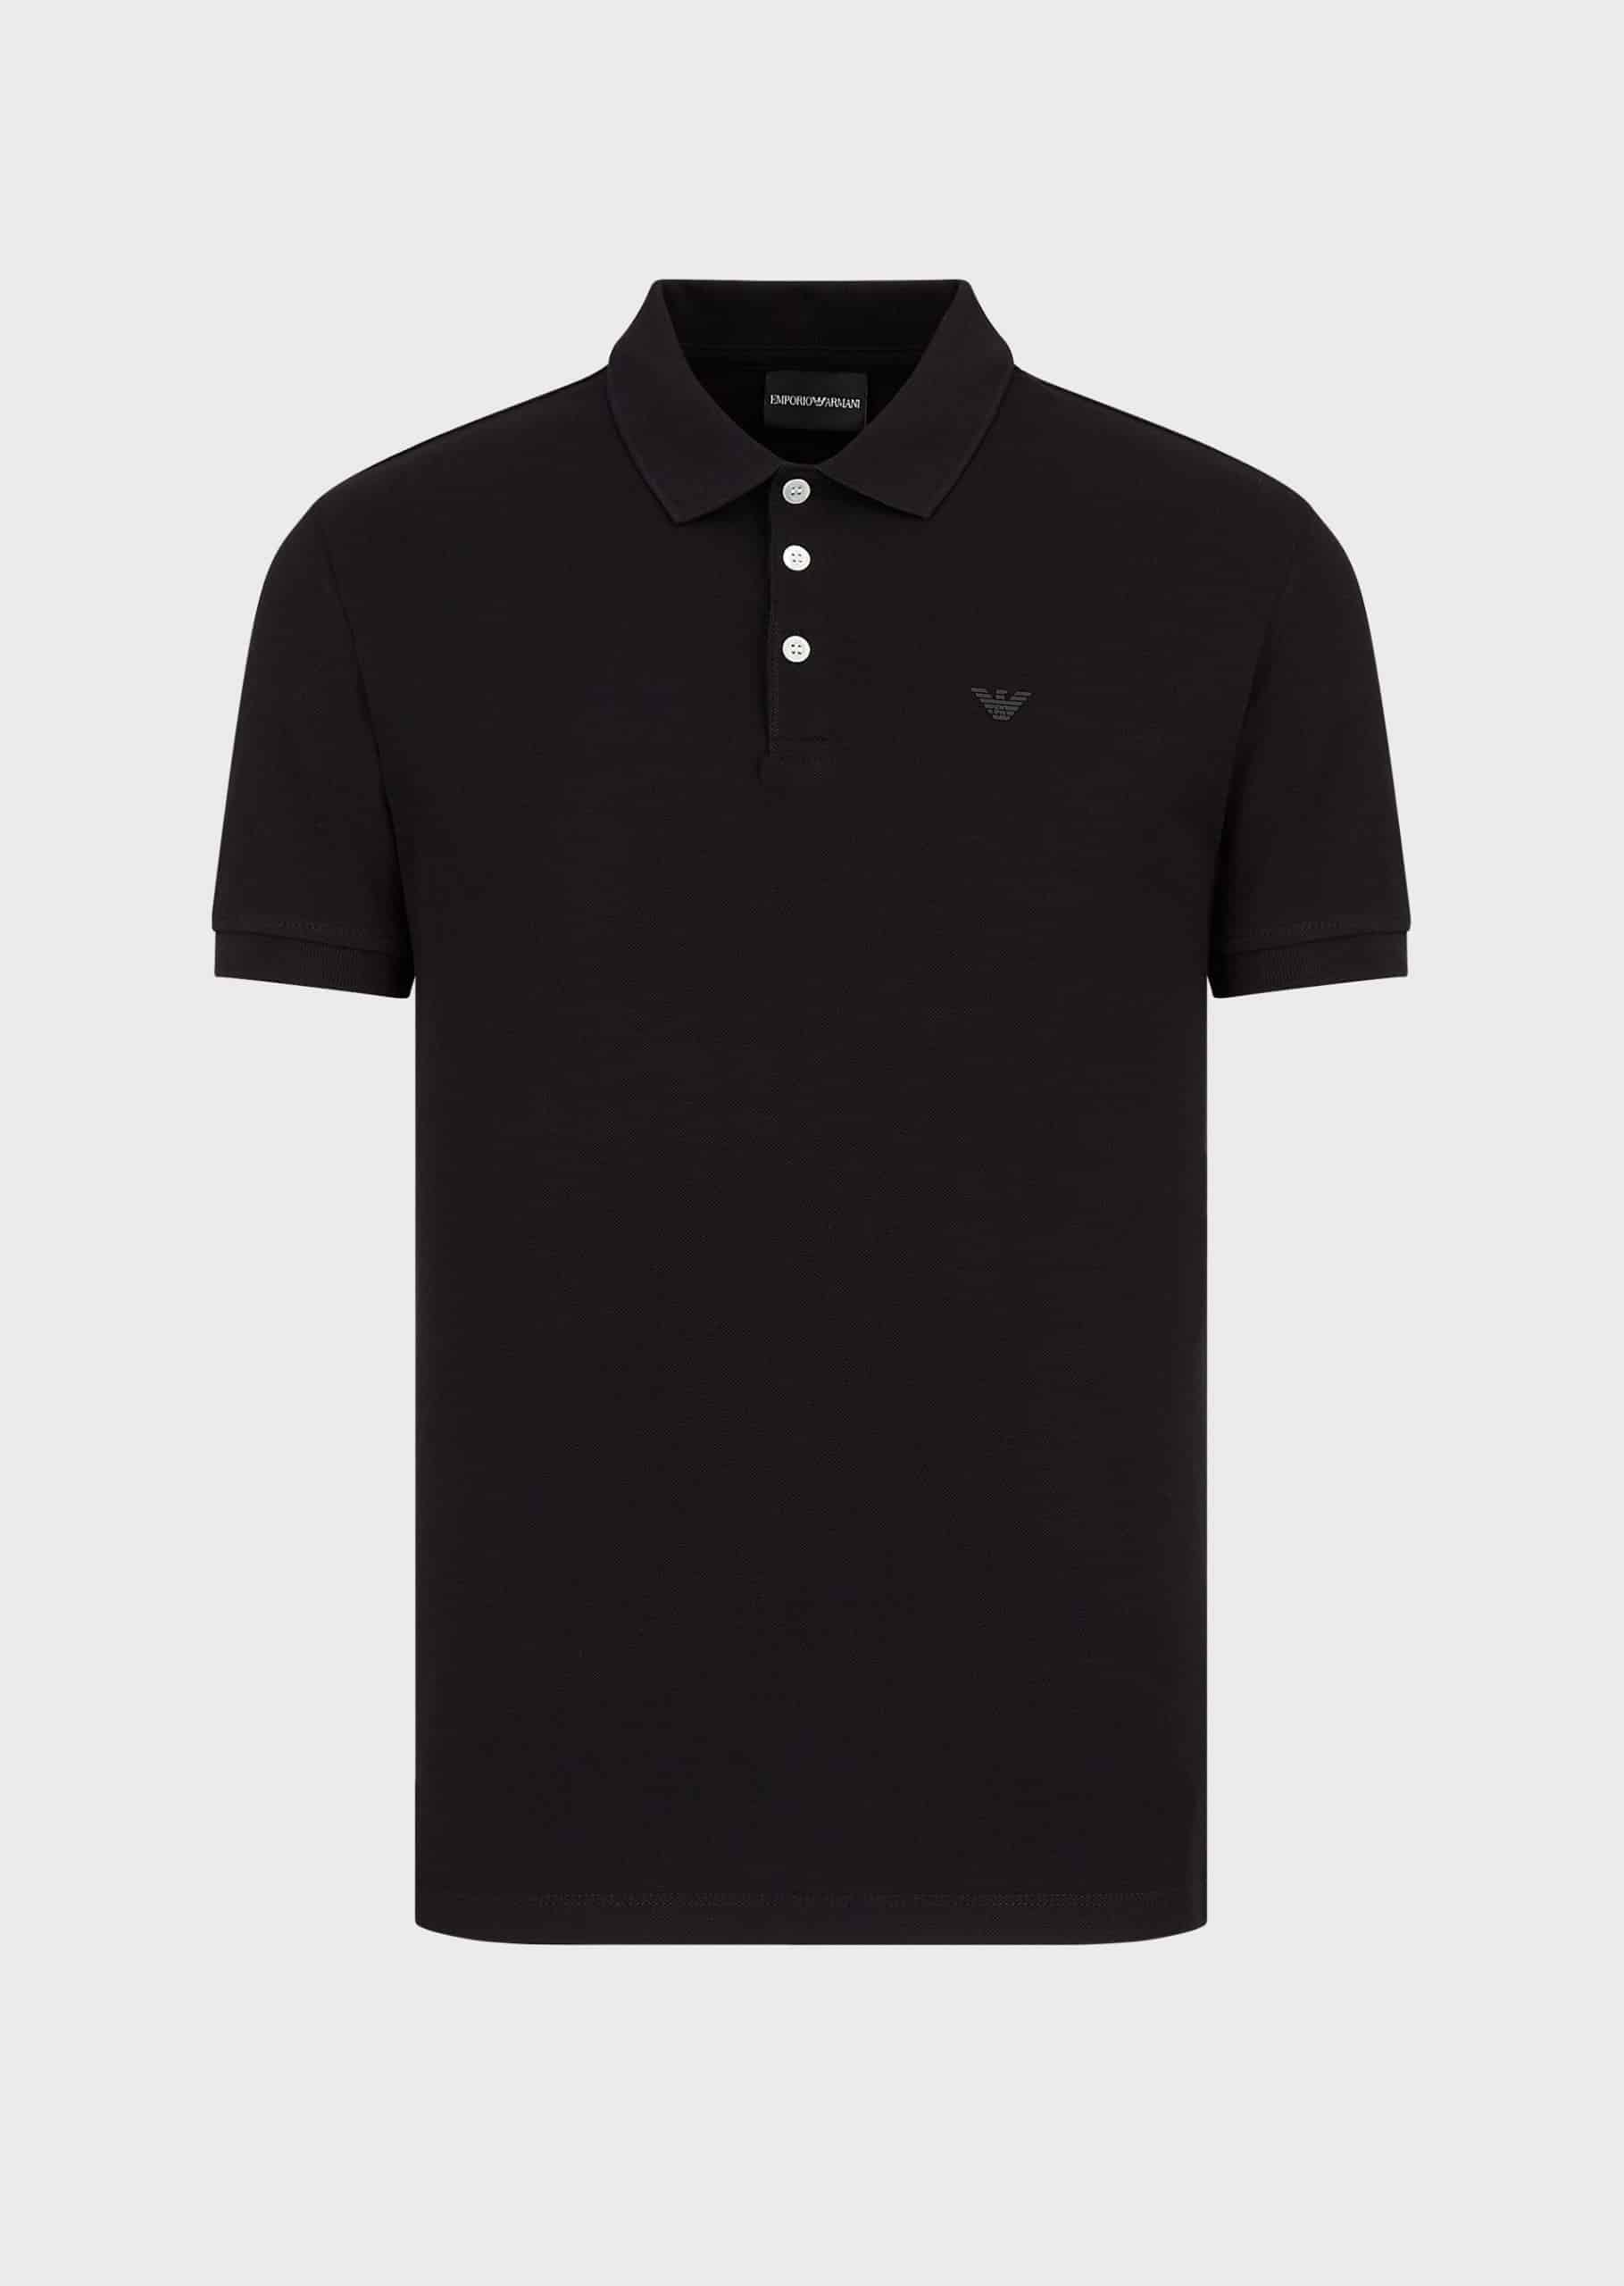 Emporio Armani Jersey polo Shirt With Eagle Embroidery